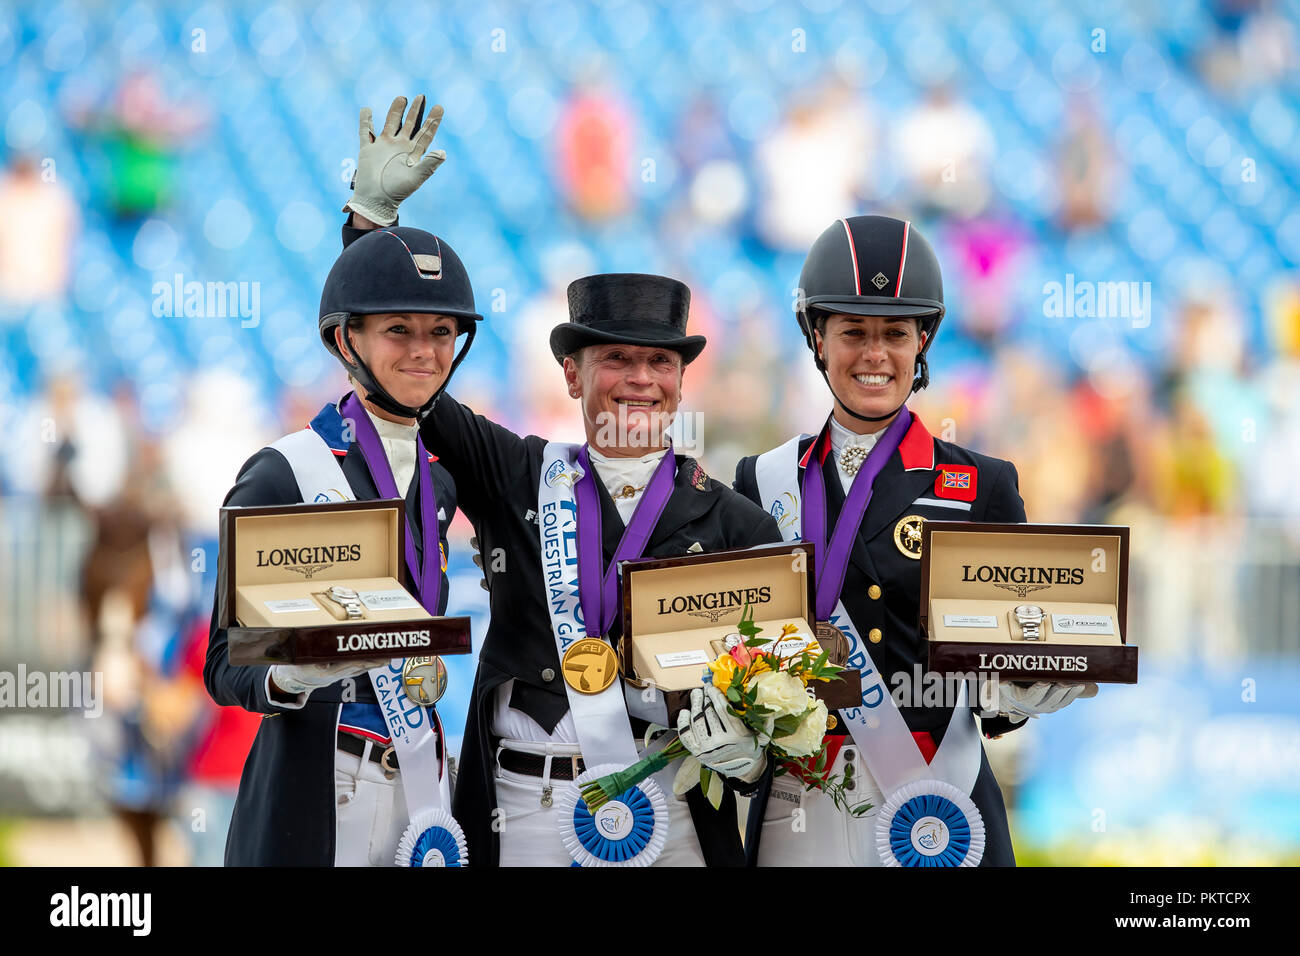 Tryon, USA. 14th Sep, 2018. Reiten, FEI World Equestrian Game 2018, Grand Prix Special: Winner Isabell Werth (M) from Germany cheers with second-placed Laura Graves from the USA (l) and third-placed Charlotte Dujardin from Great Britain on the podium. Credit: Stefan Lafrentz/dpa/Alamy Live News - Stock Image